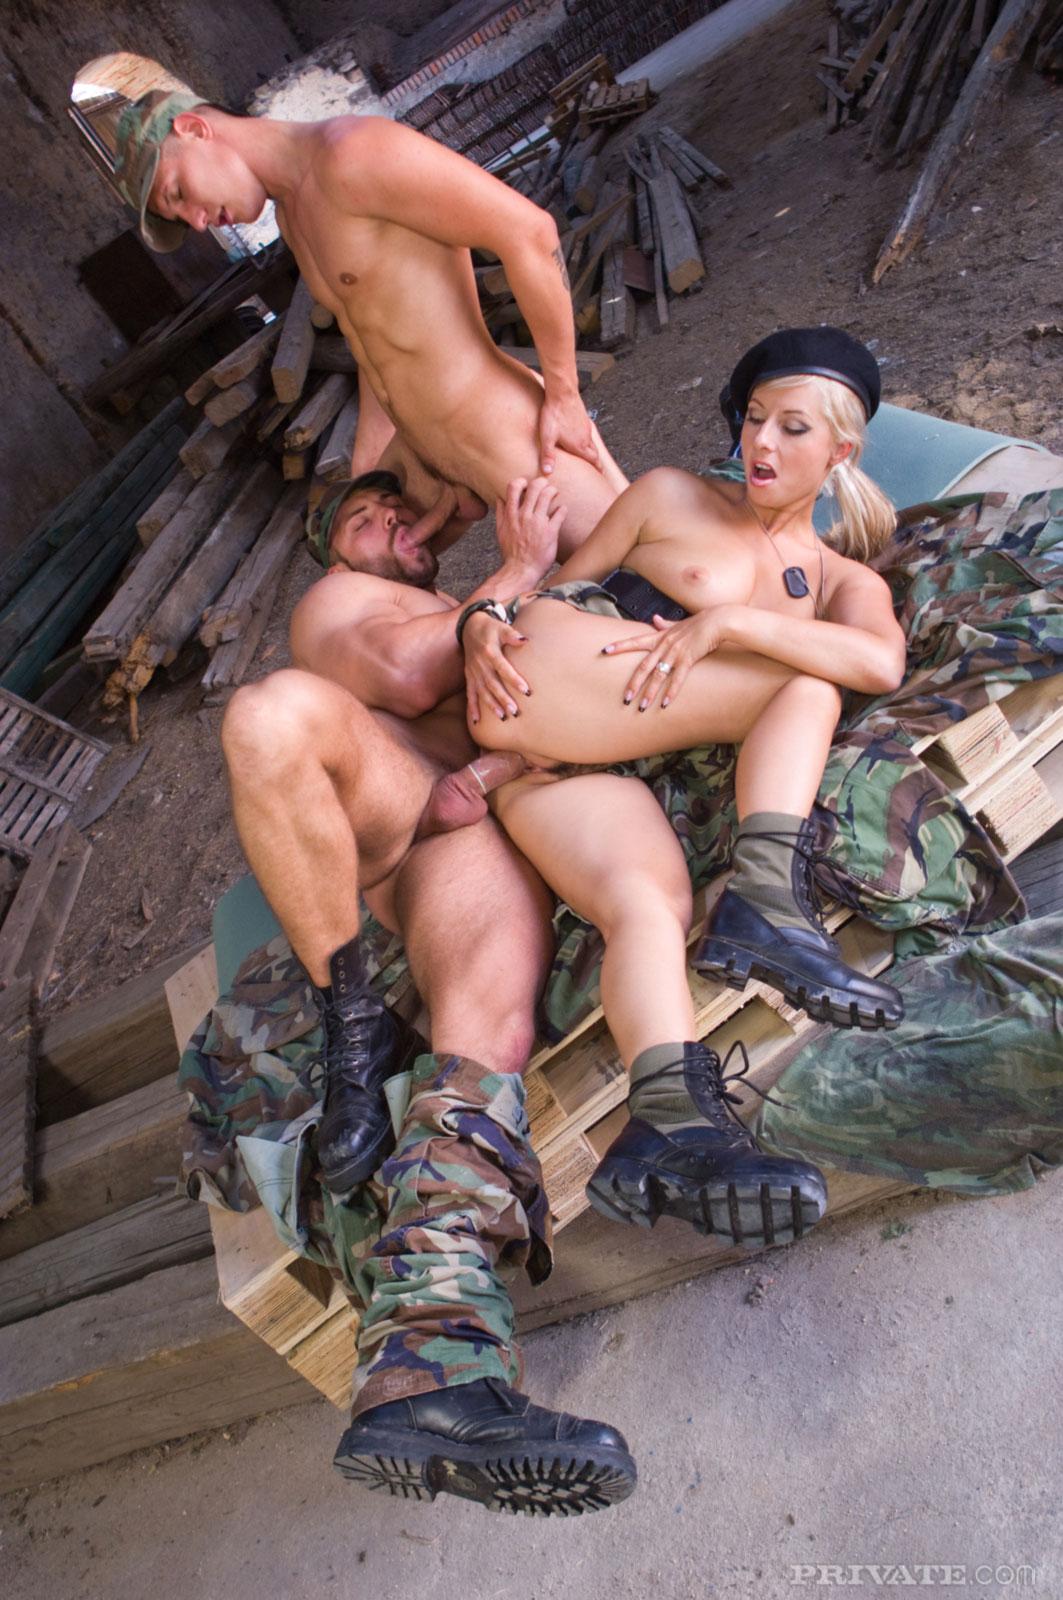 Free soldier bisexual gay porn first time 3